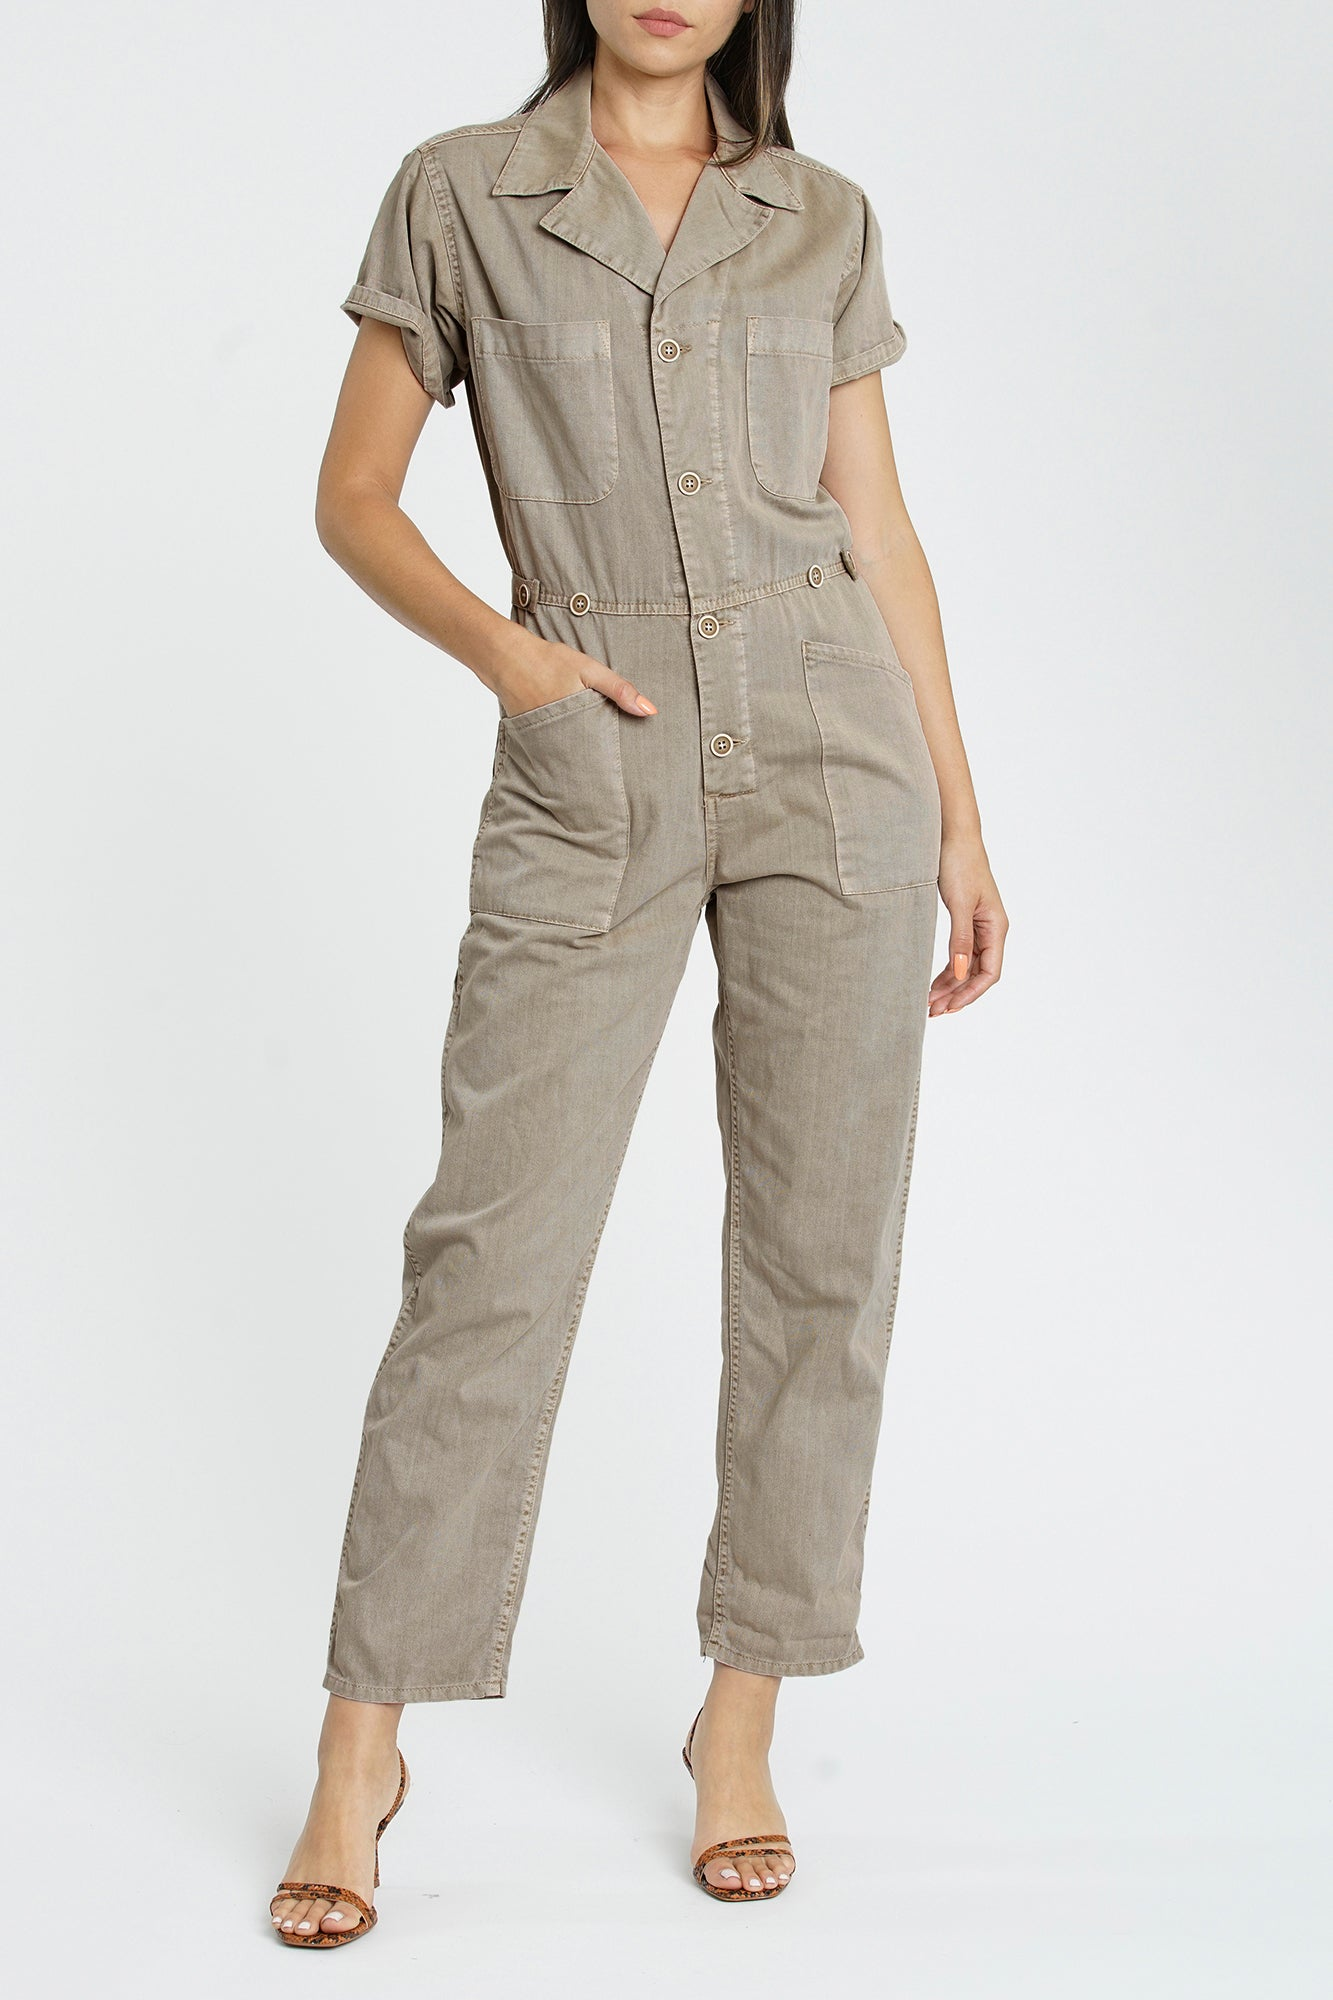 Grover Short Sleeve Field Suit - Sandstone